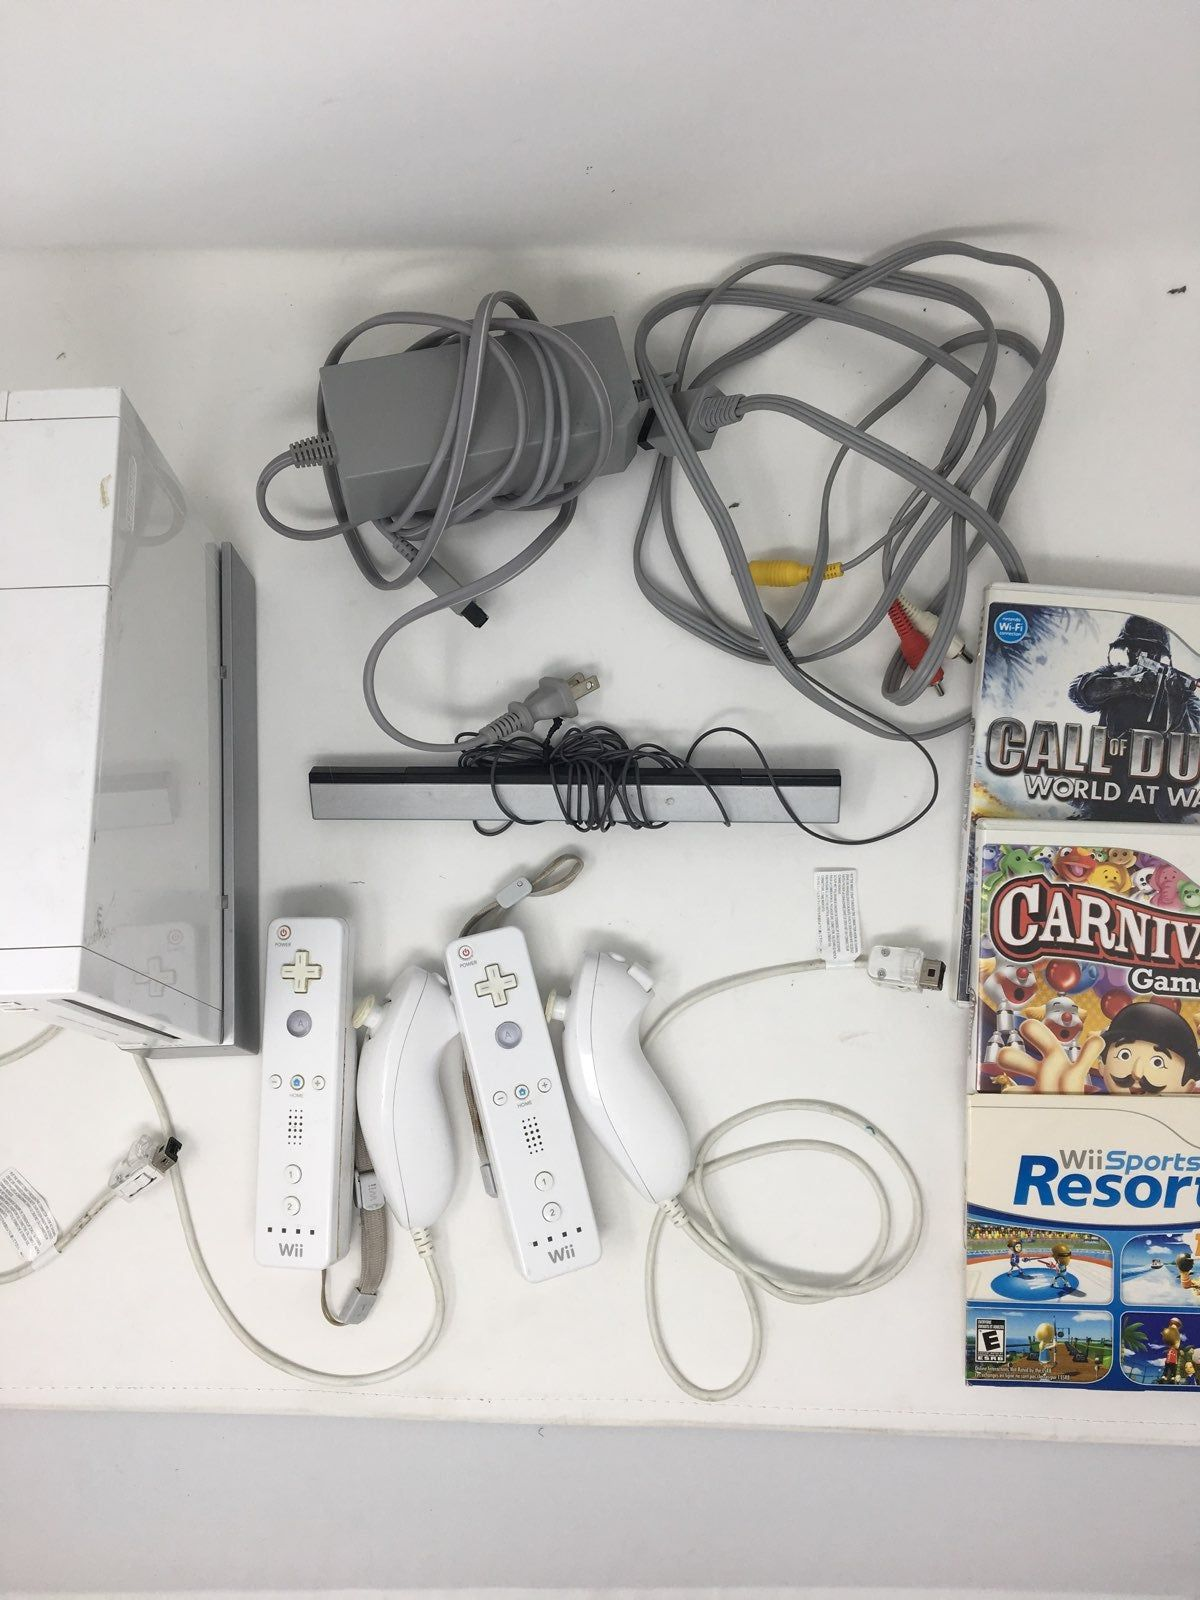 Wii console and 2 Wii controllers, with nunchucks and all